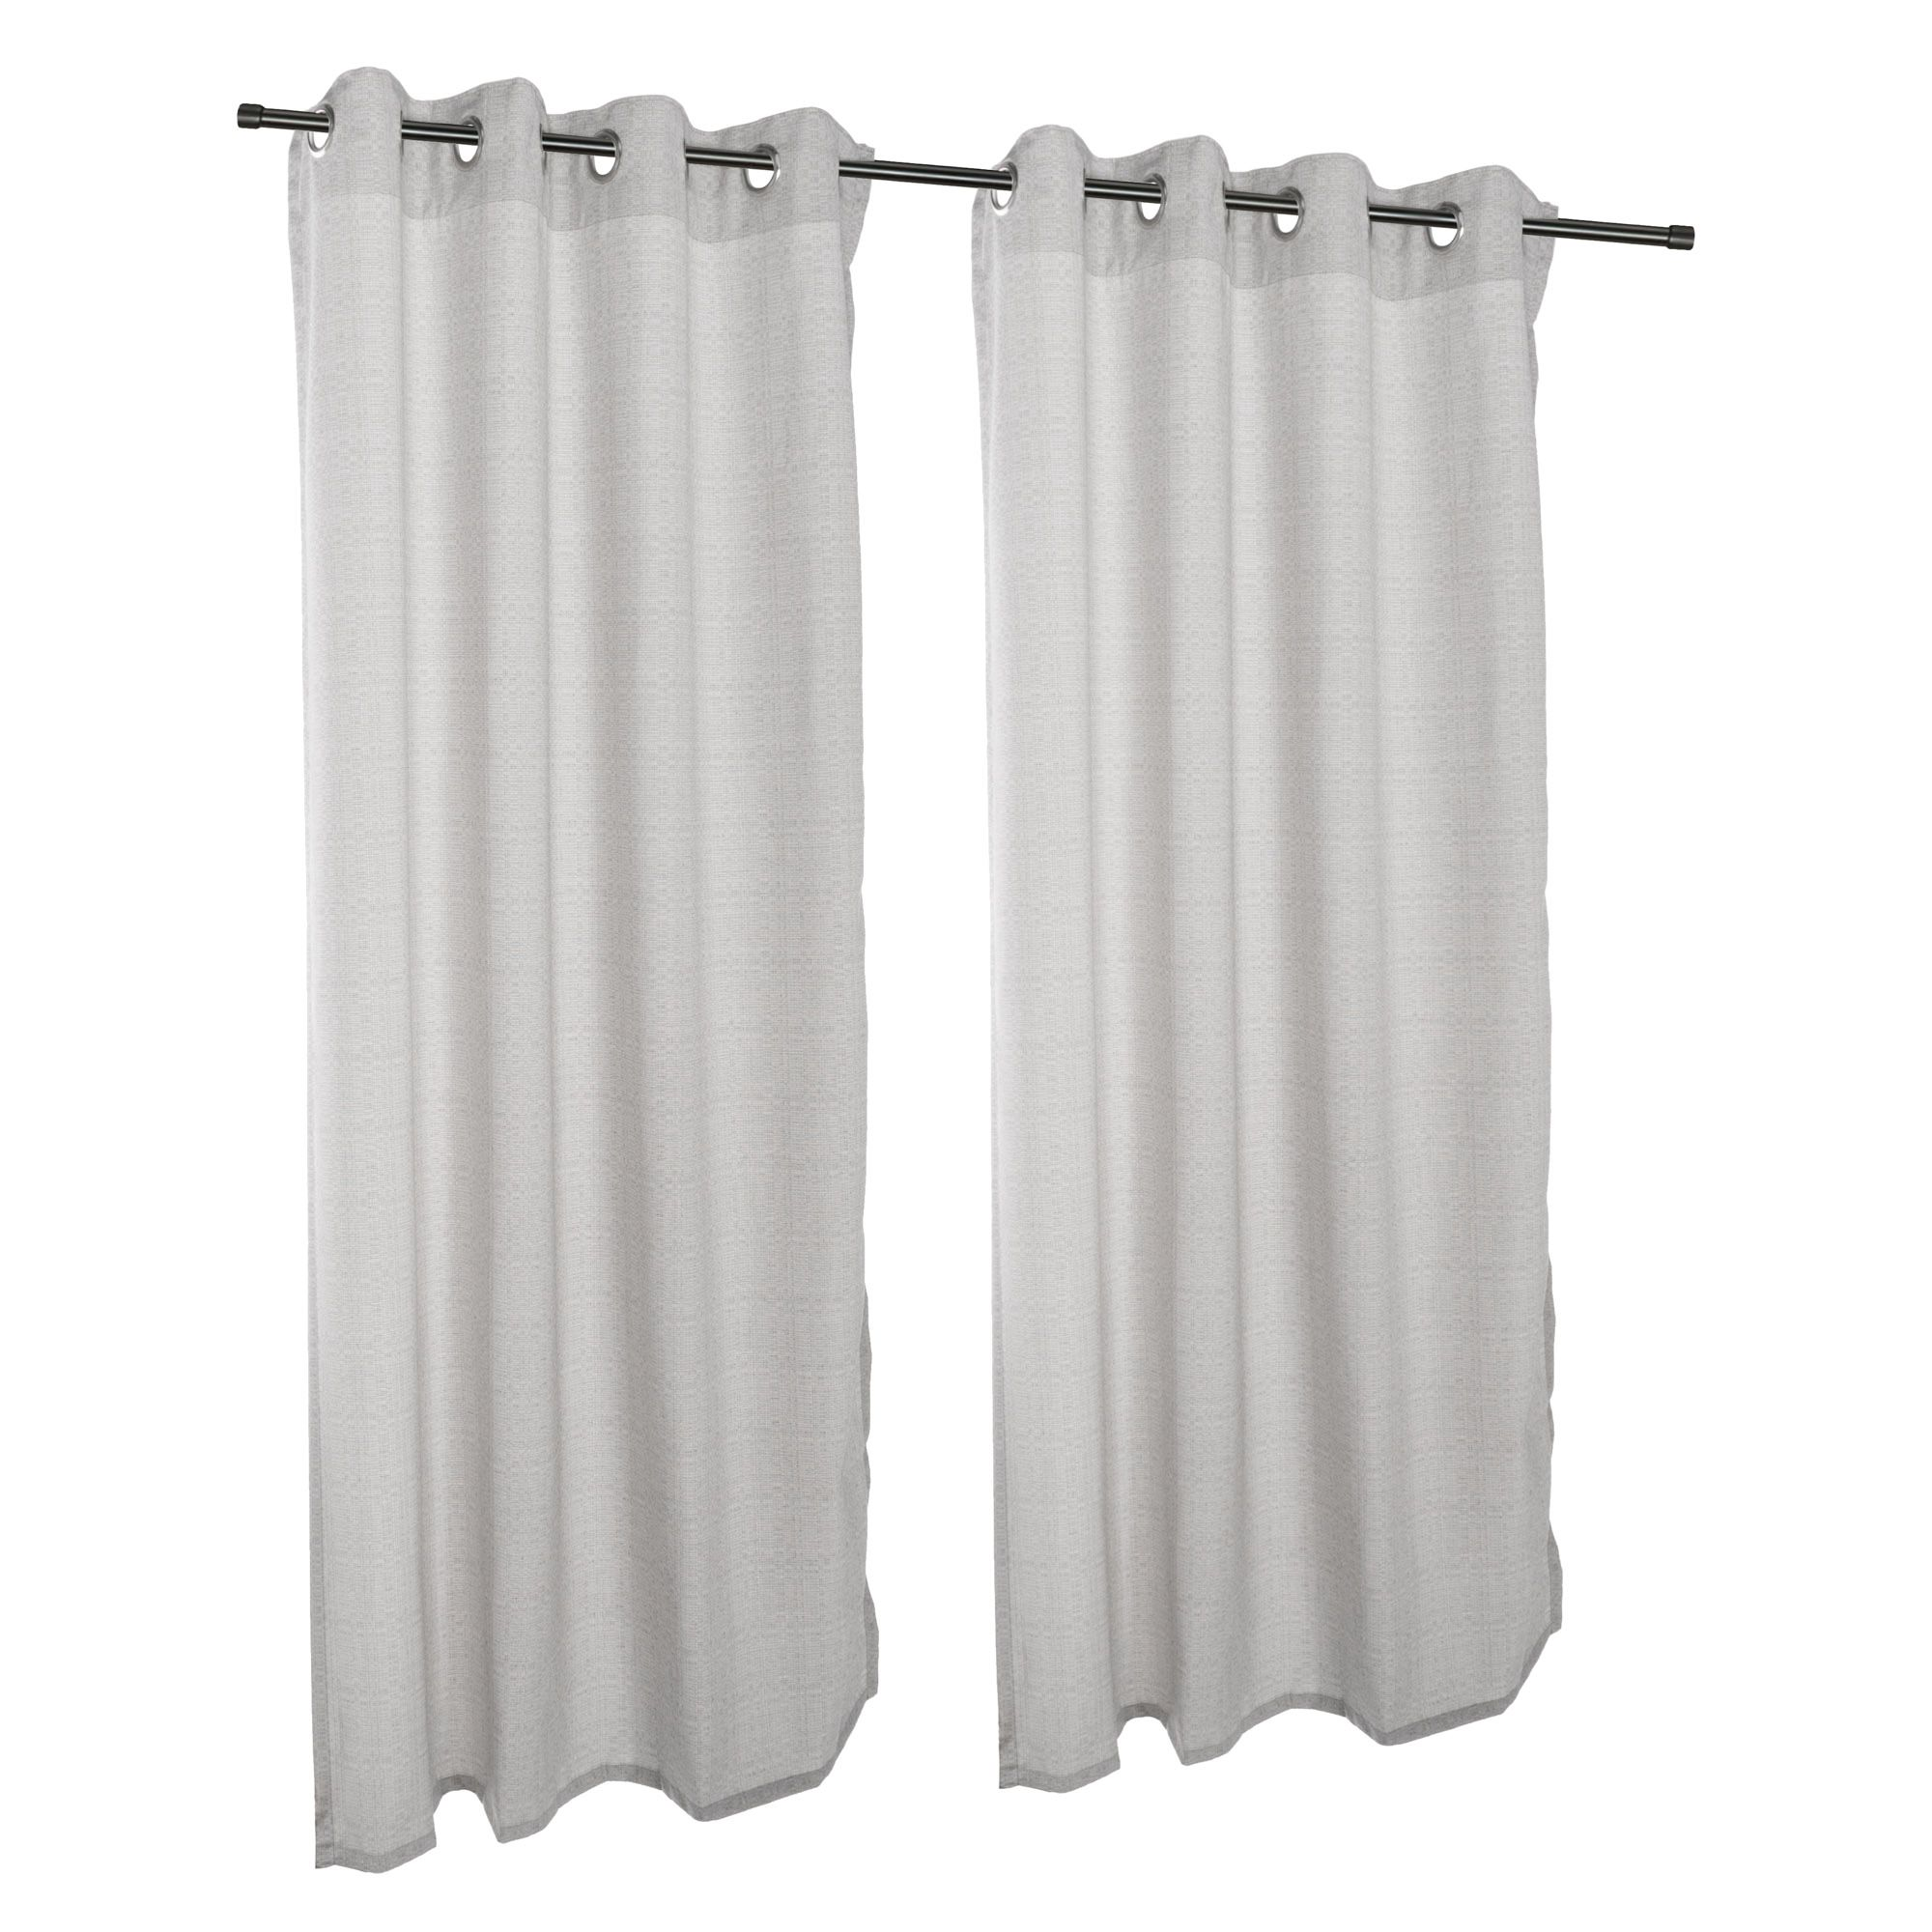 size panels and drapes valances navy curtains window catalog cottage bronze rods linen gray natural kohls french treatments full draperies stripe country white curtain bryant of lane home